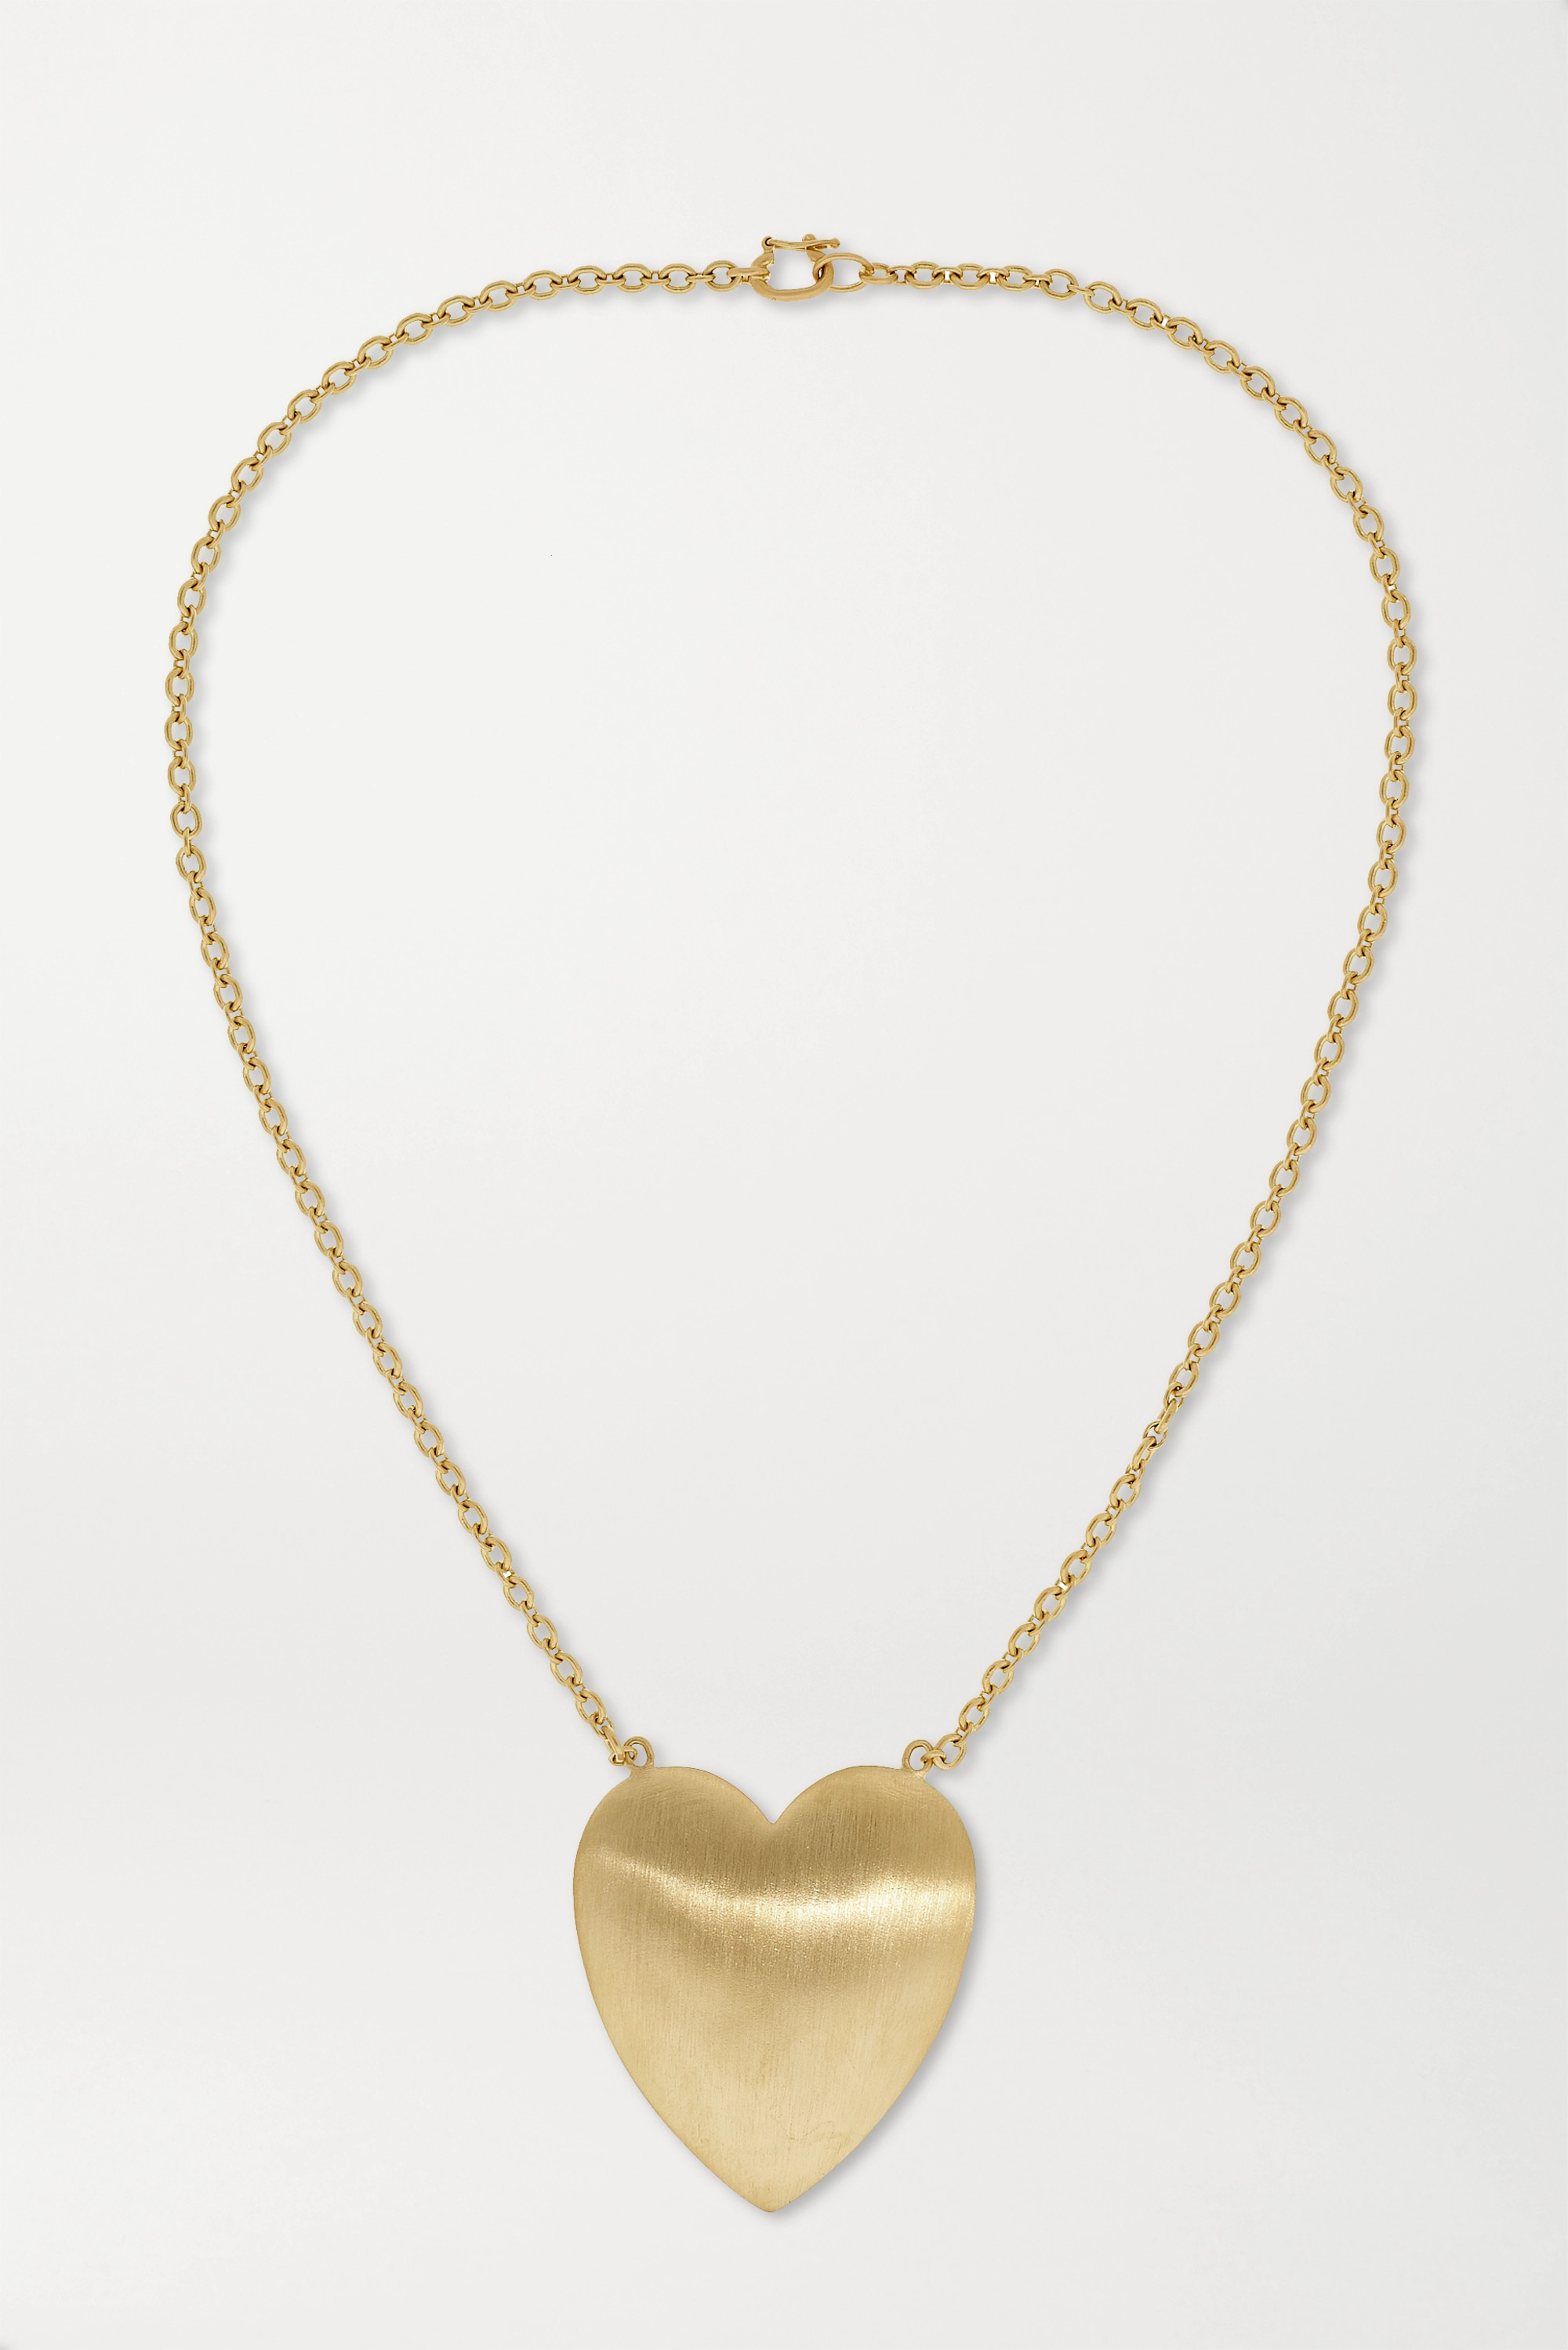 Irene Neuwirth Love 18-karat gold necklace